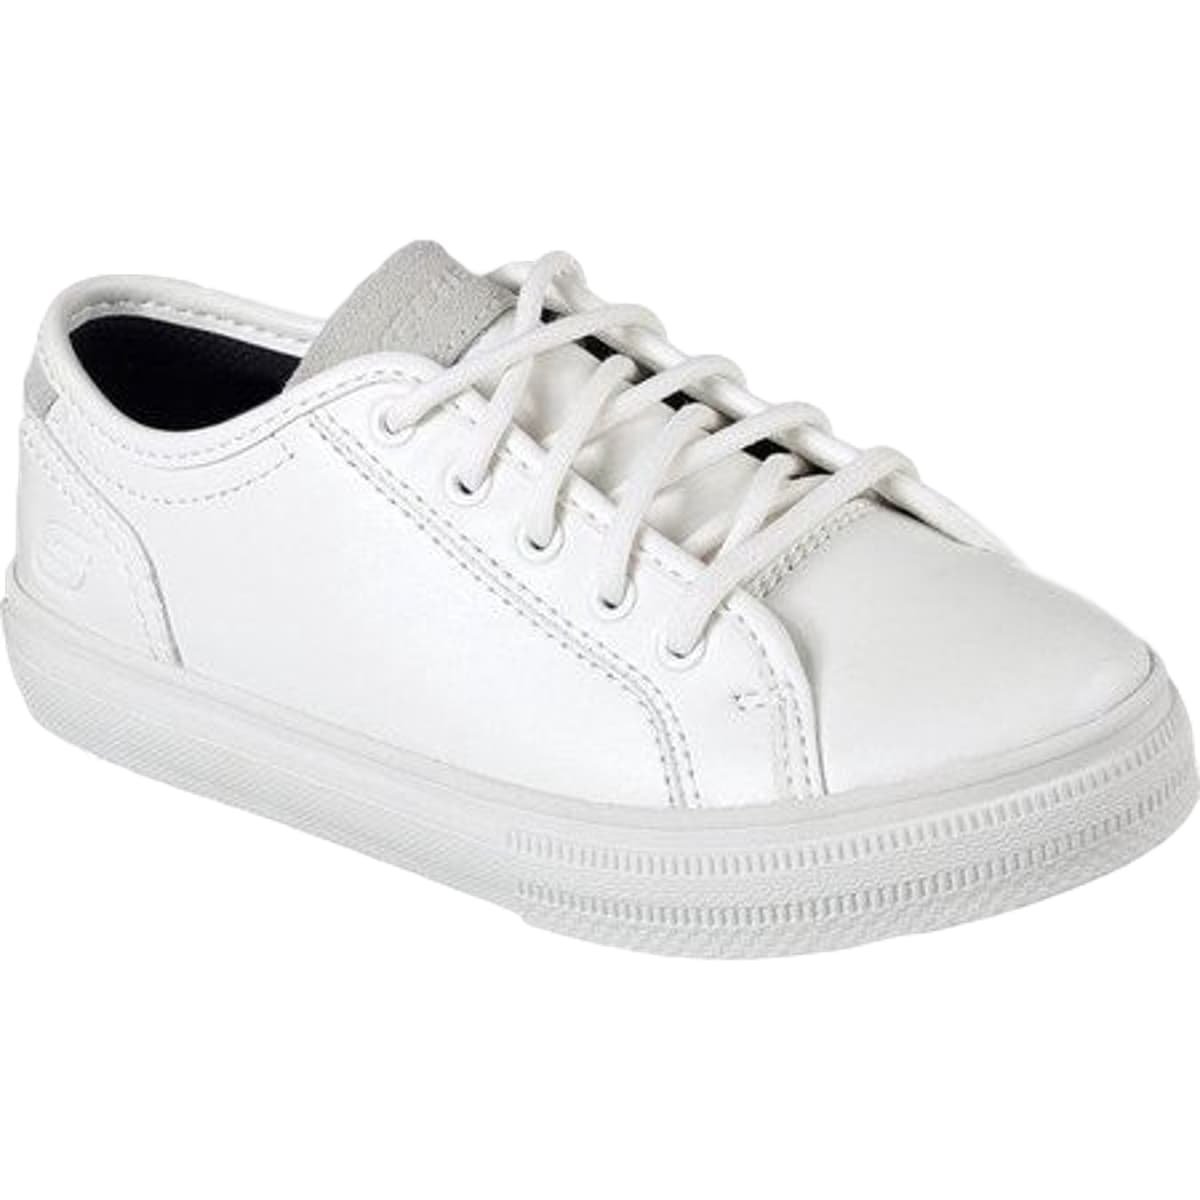 Skechers Boys' Relaxed Fit Gallix Hixon Sneaker, Off White, US 3 M SKECHERS USA Inc